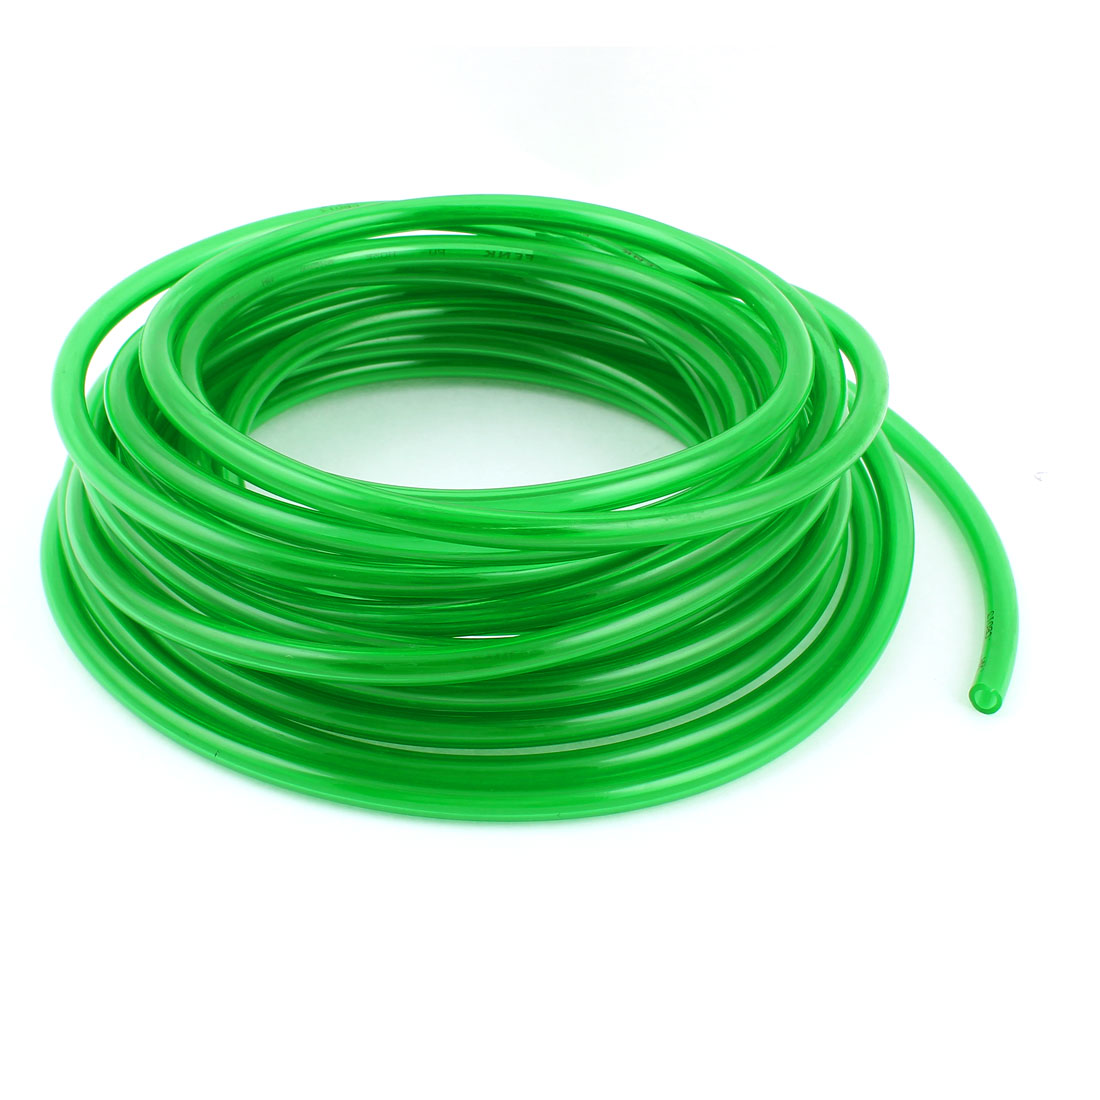 10m 33ft 6mmx4mm Pneumatic Polyurethane PU Hose Tube Pipe Clear Green